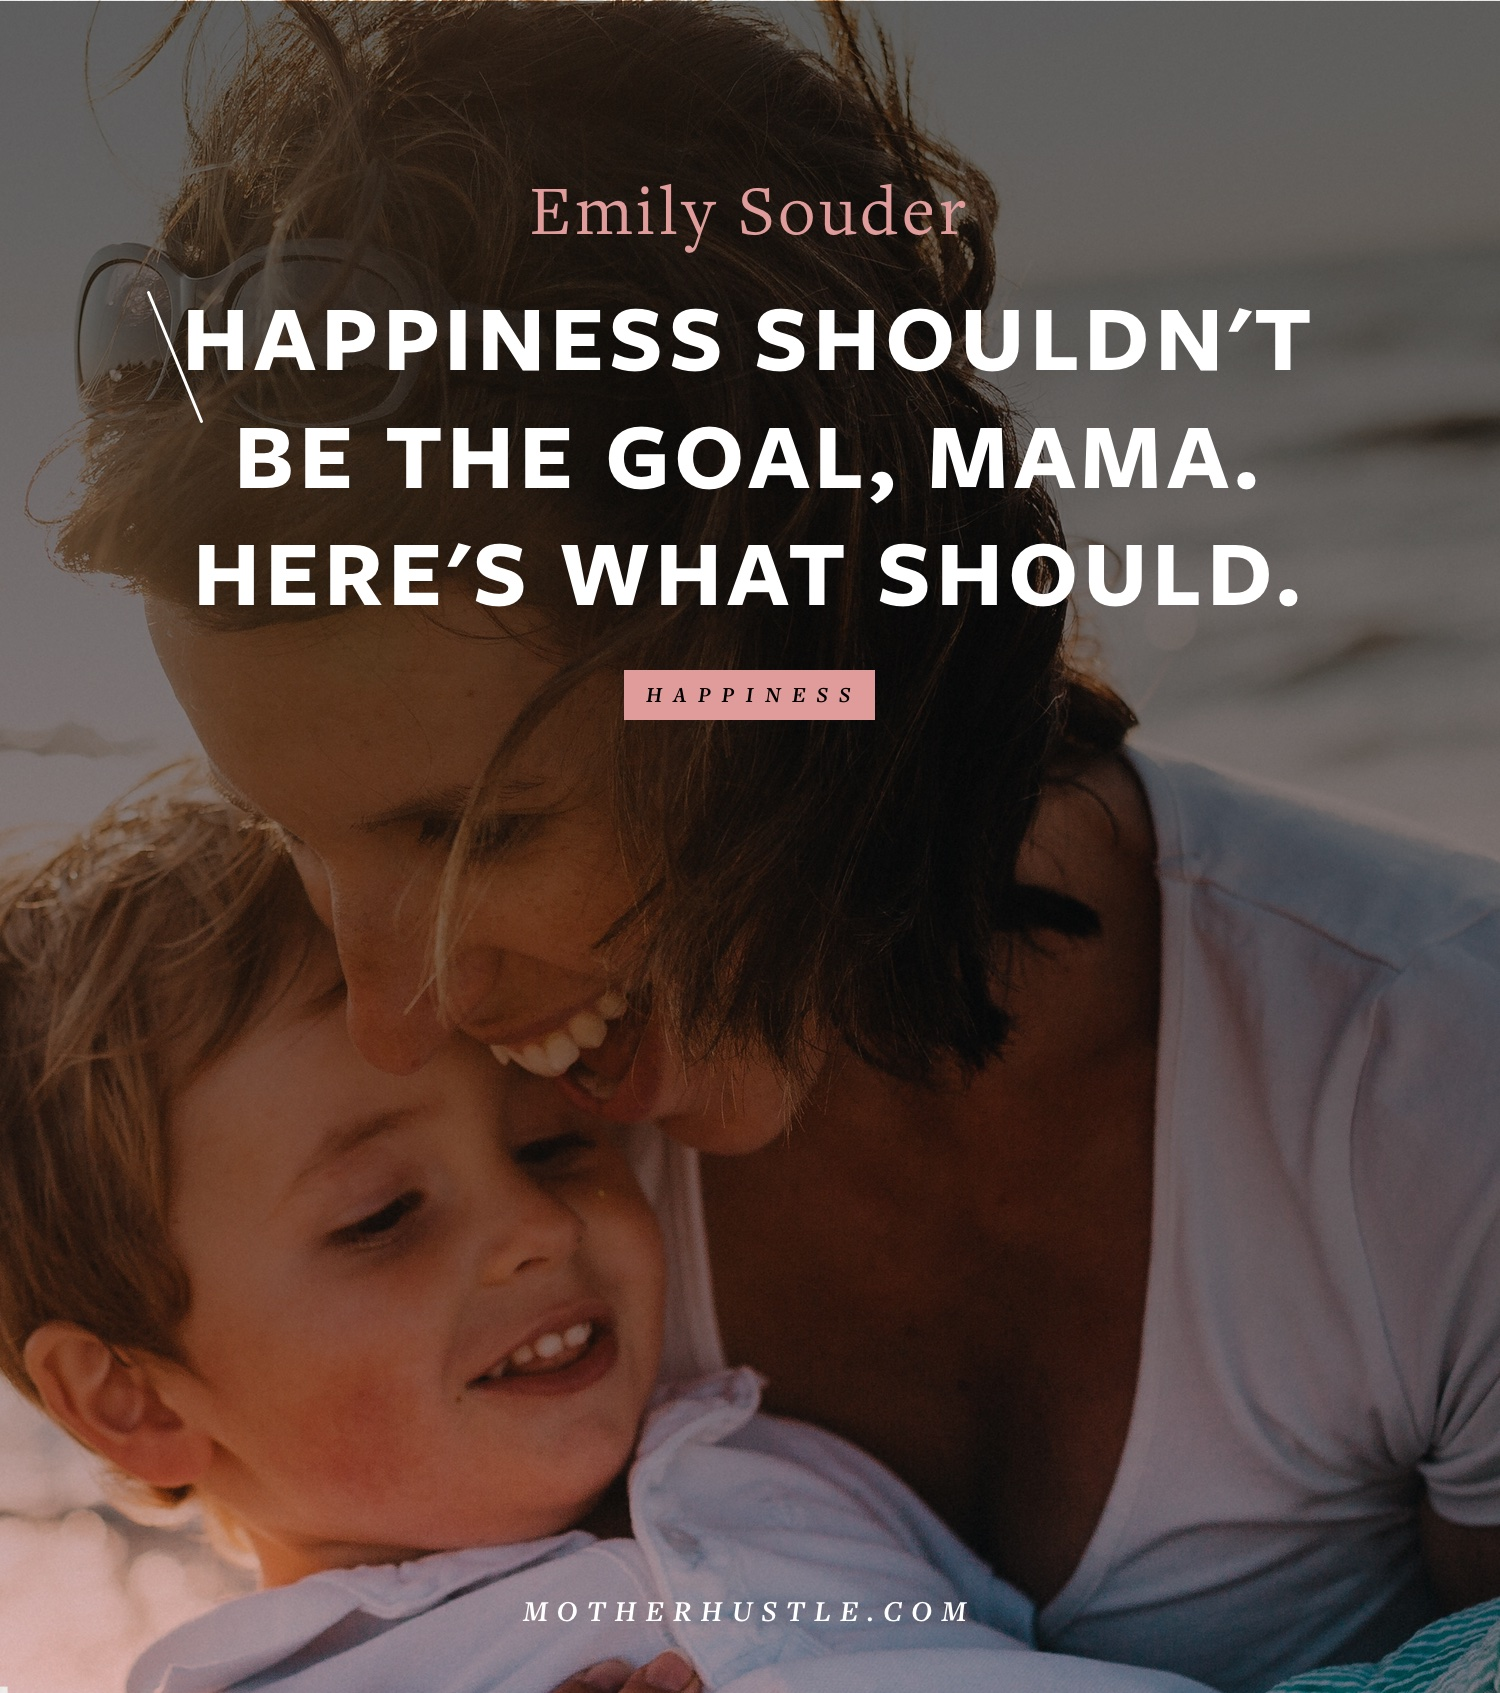 Happiness Shouldn't Be The Goal, Mama. Here's What Should. - BY EMILY SOUDER for MotherHustle